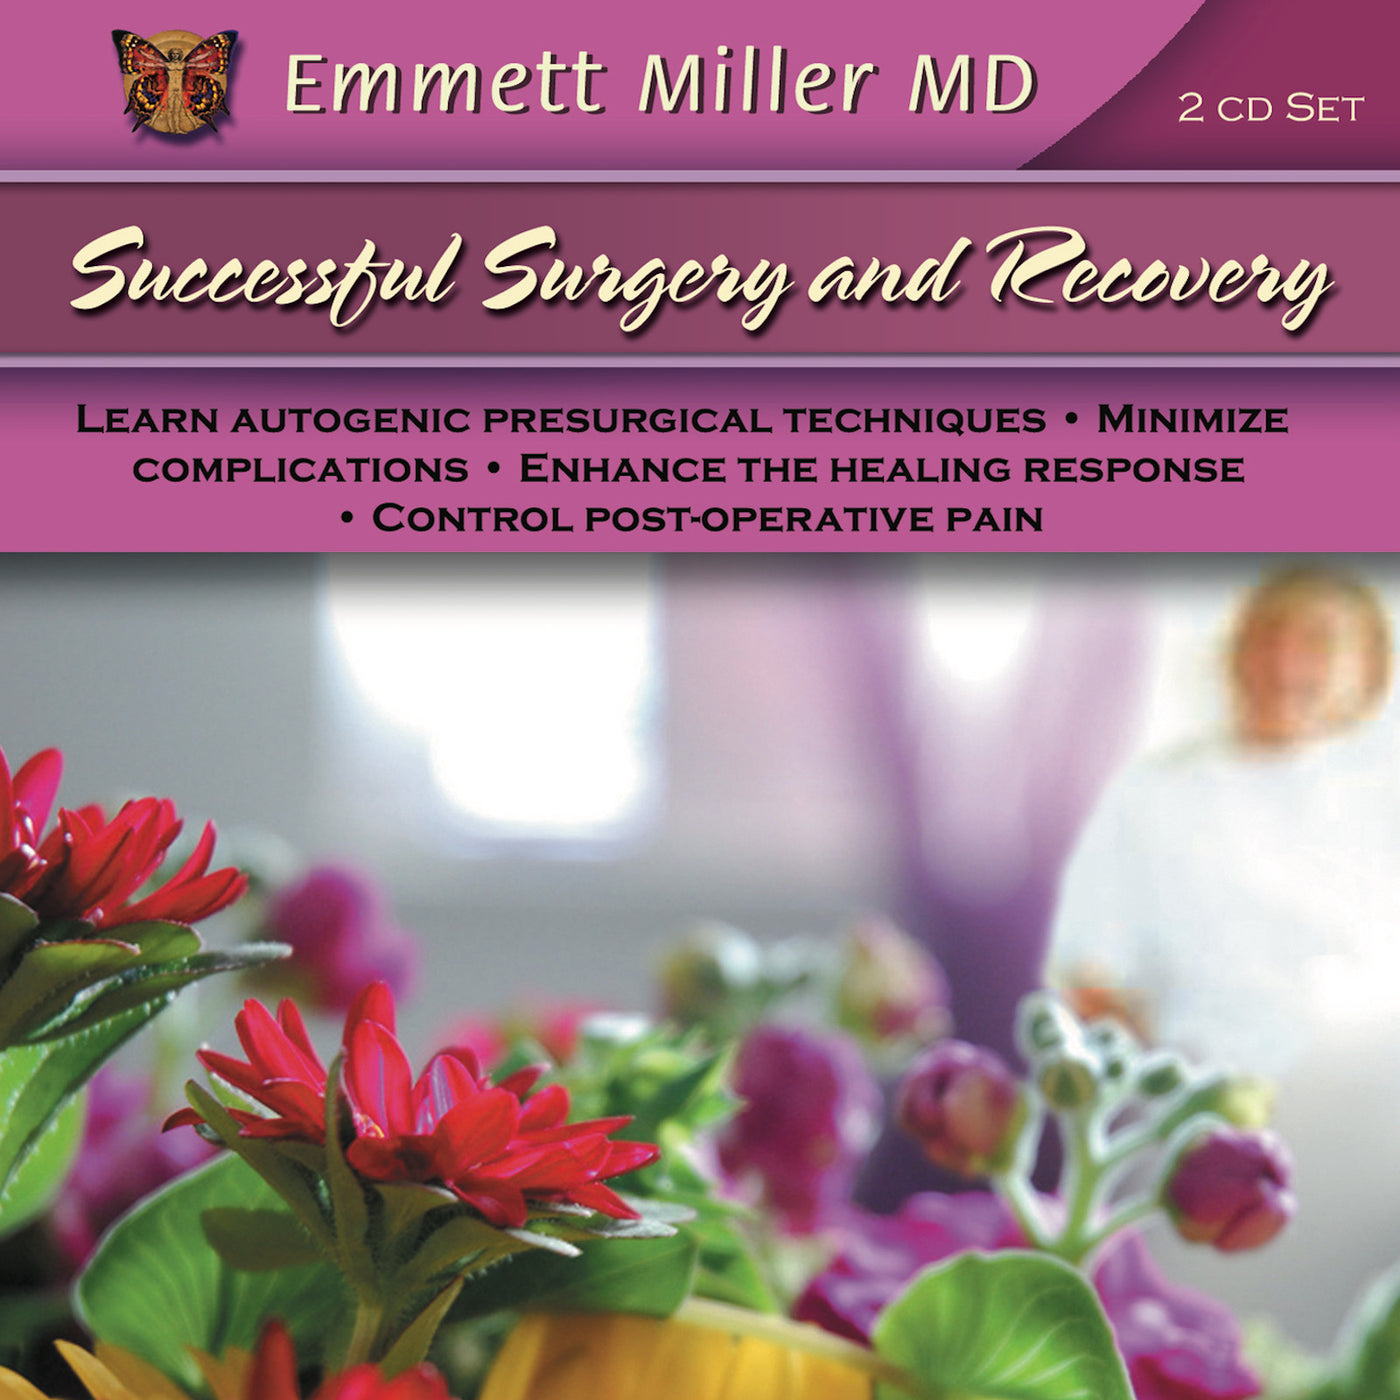 Successful Surgery and Recovery with Dr. Emmett Miller Audio Program Dr.  Emmett Miller -